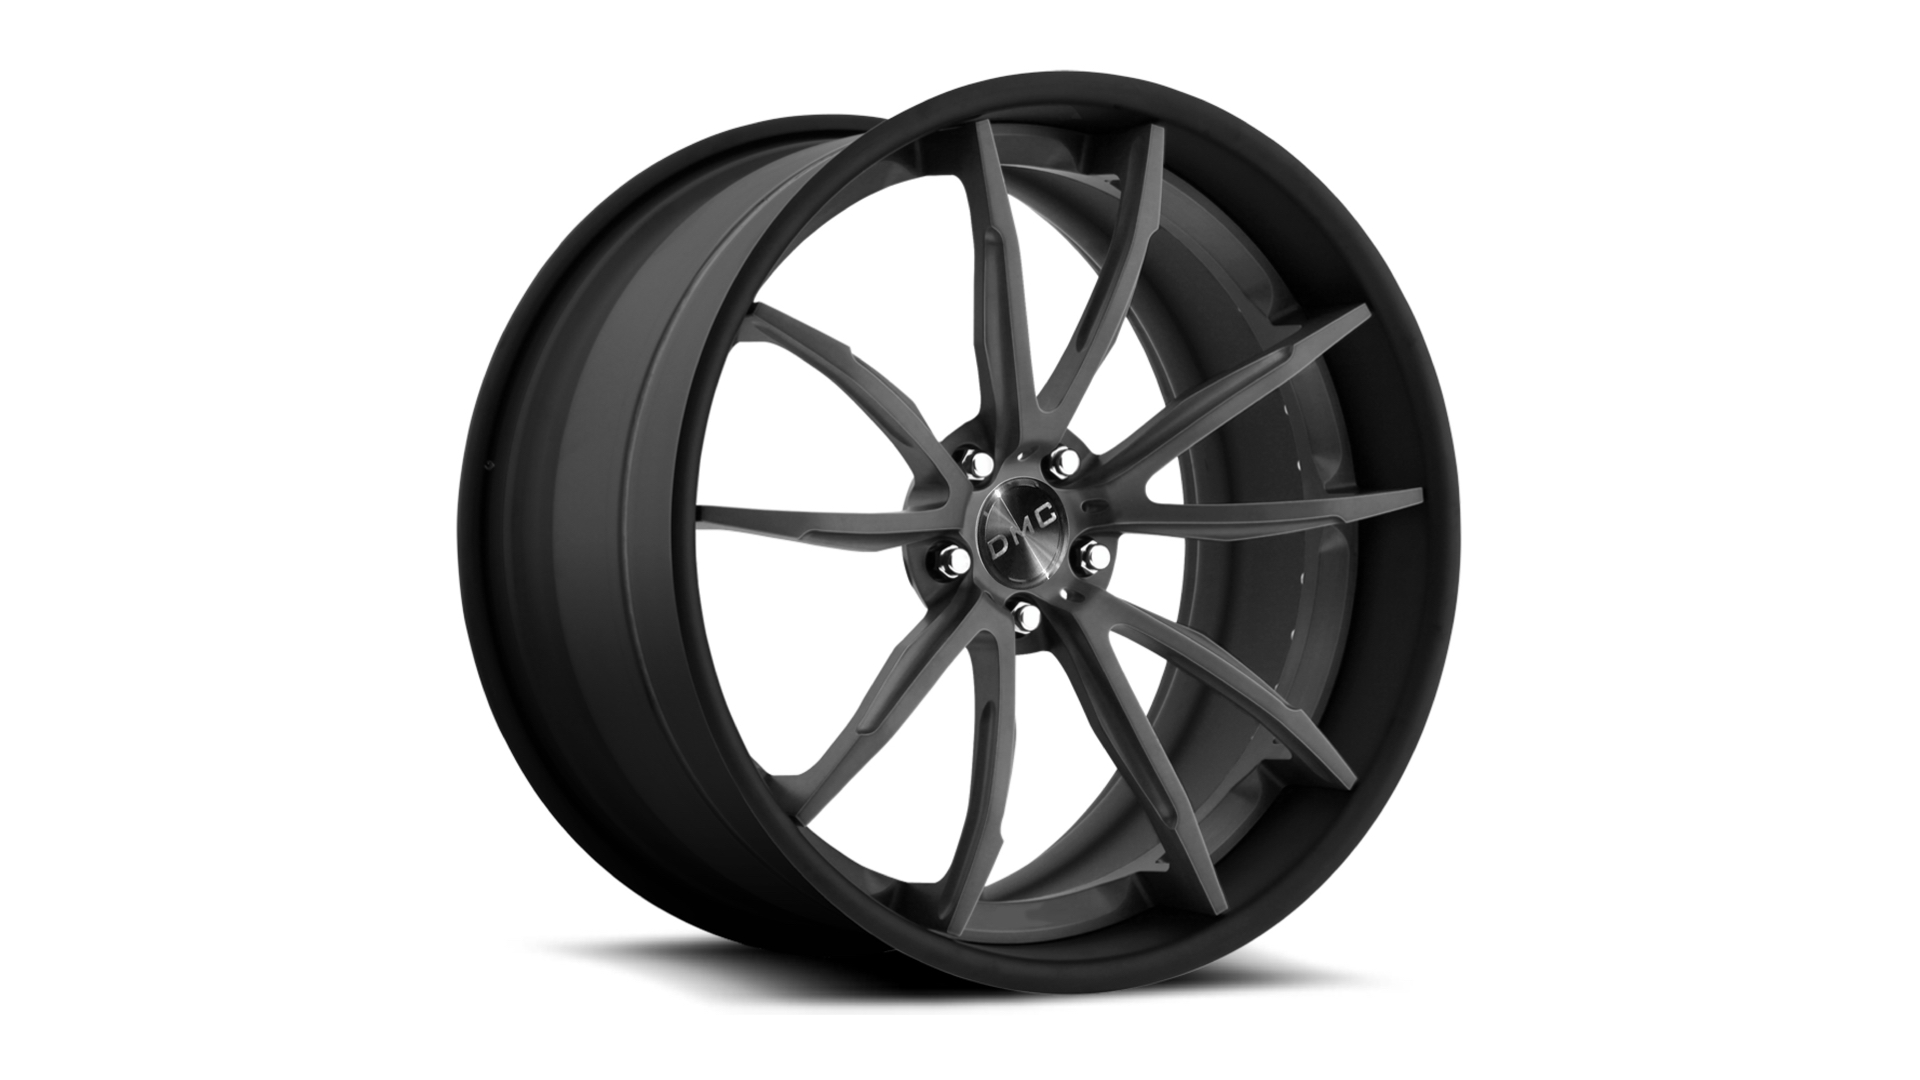 DMC Forged Alloy Wheels